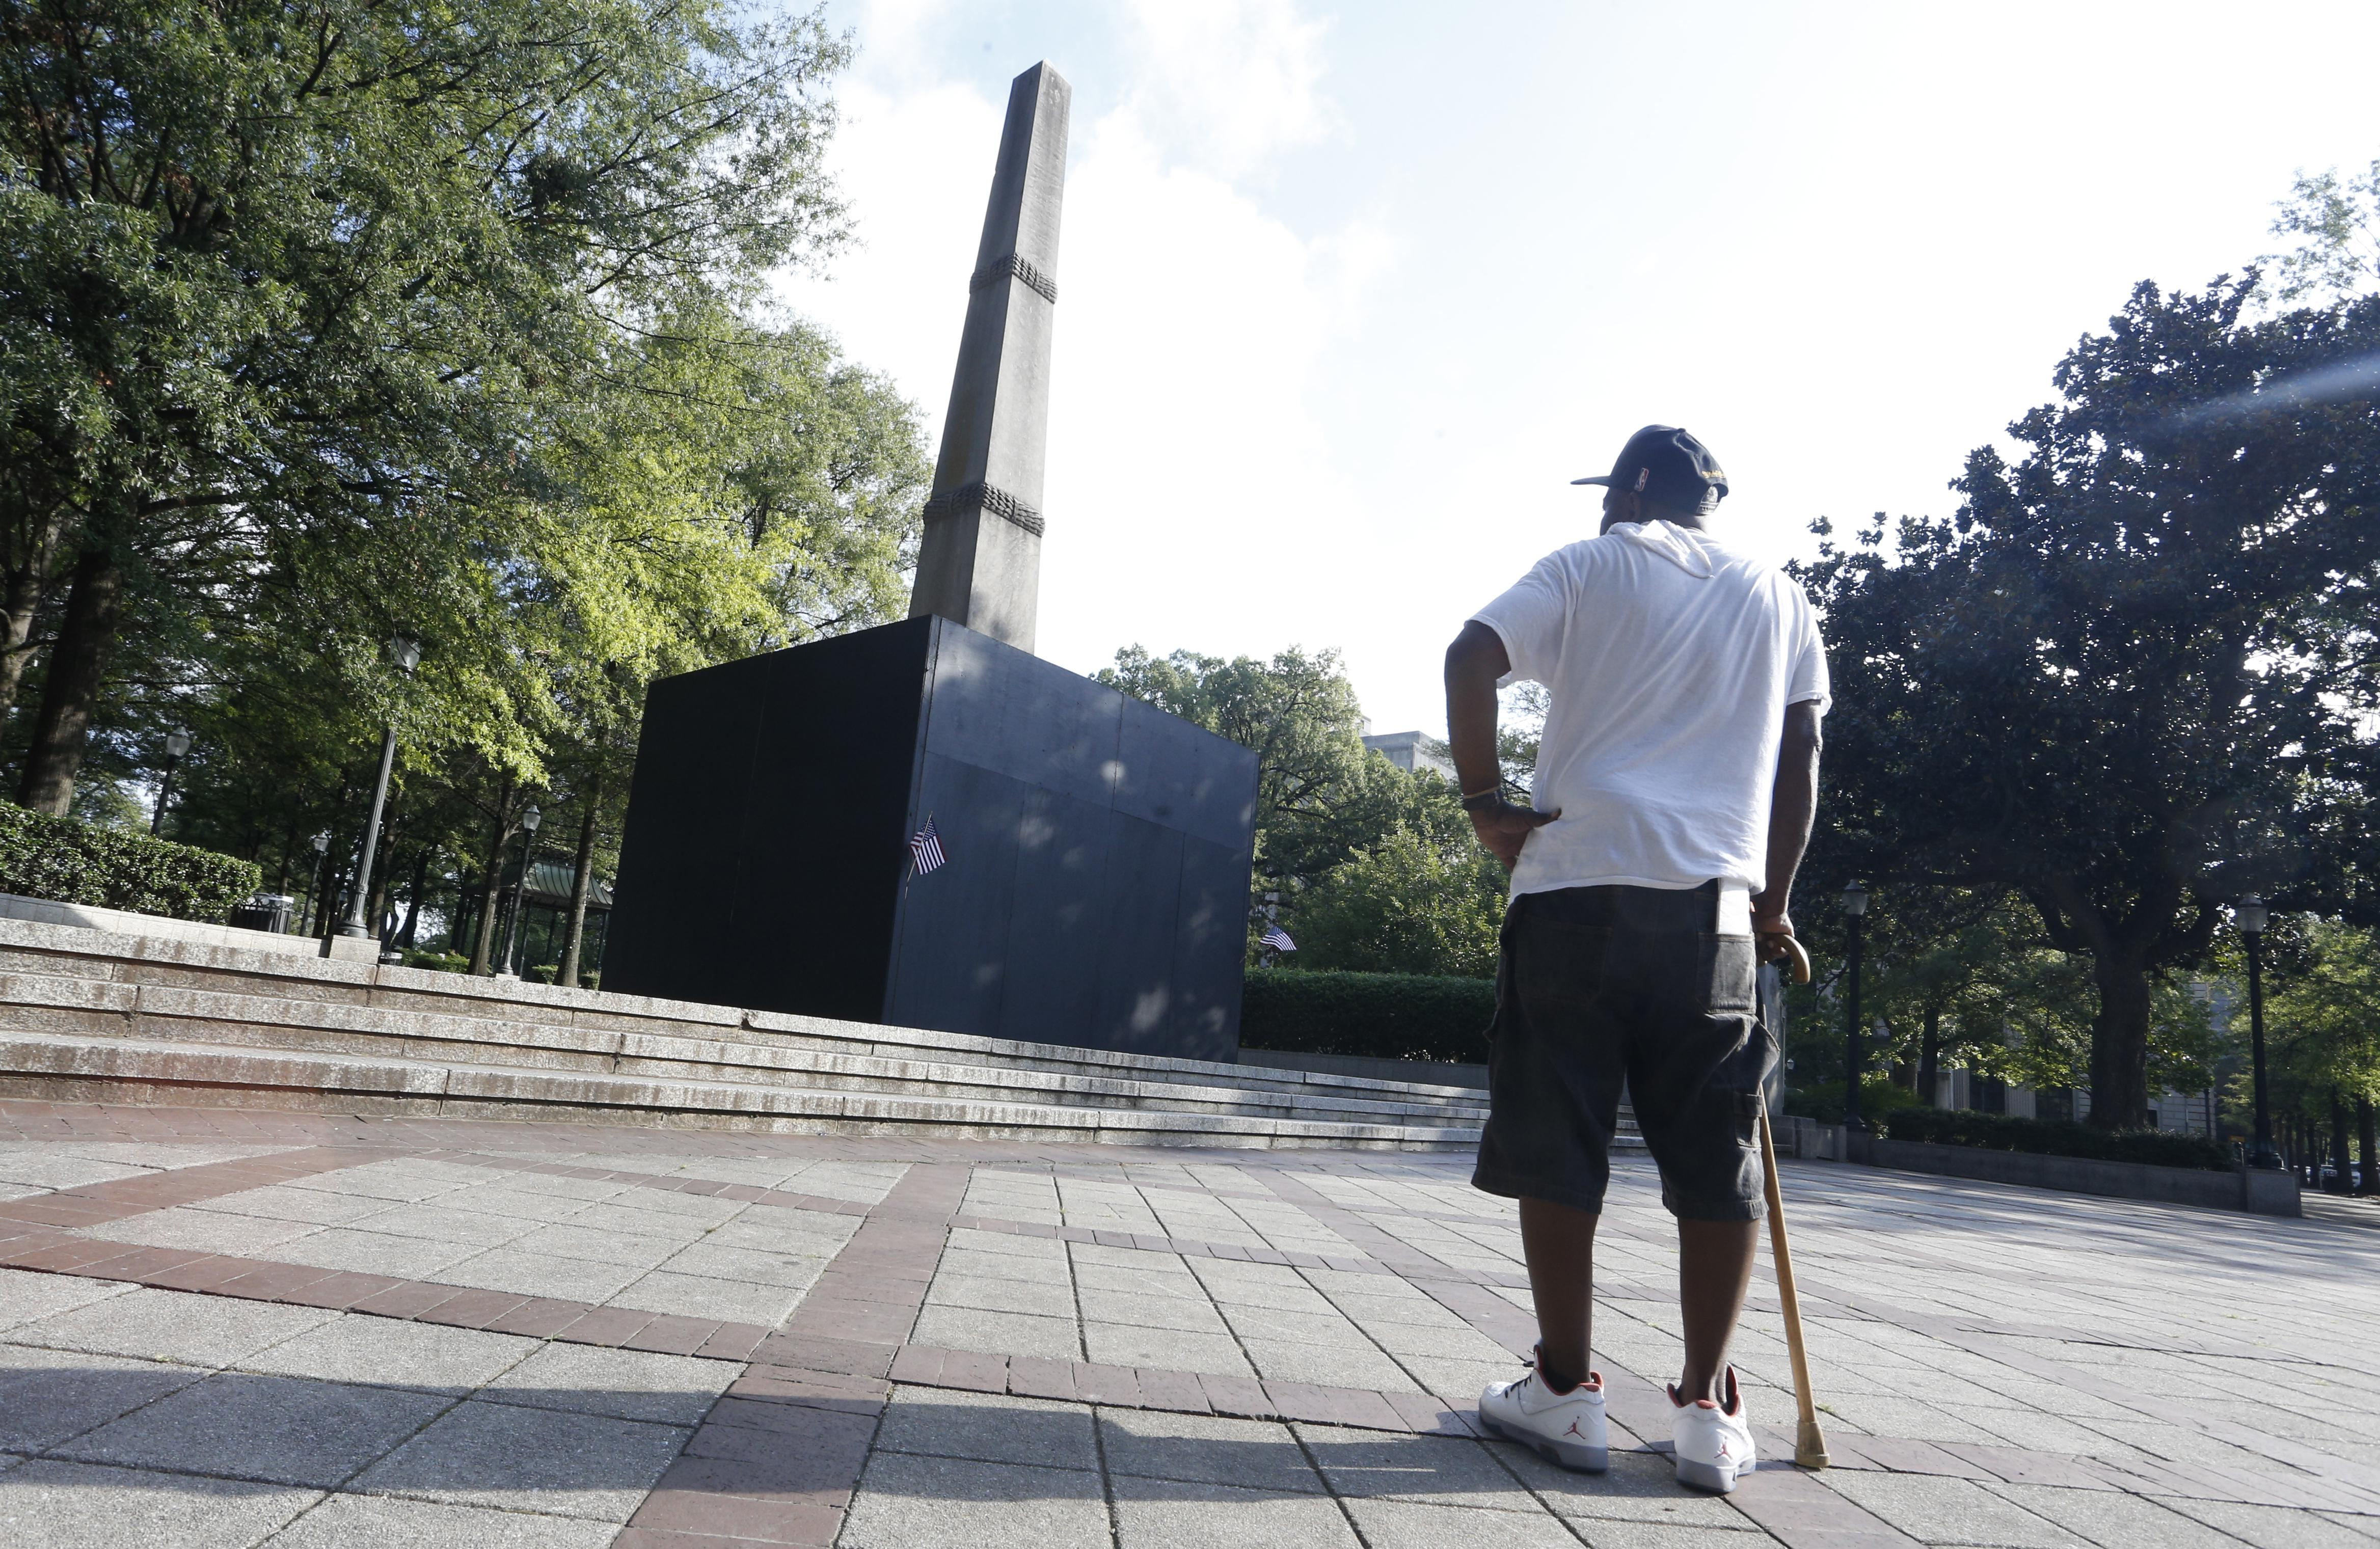 A man with a cane pauses to look at a now covered confederate monument in Linn Park in Birmingham, Alabama.